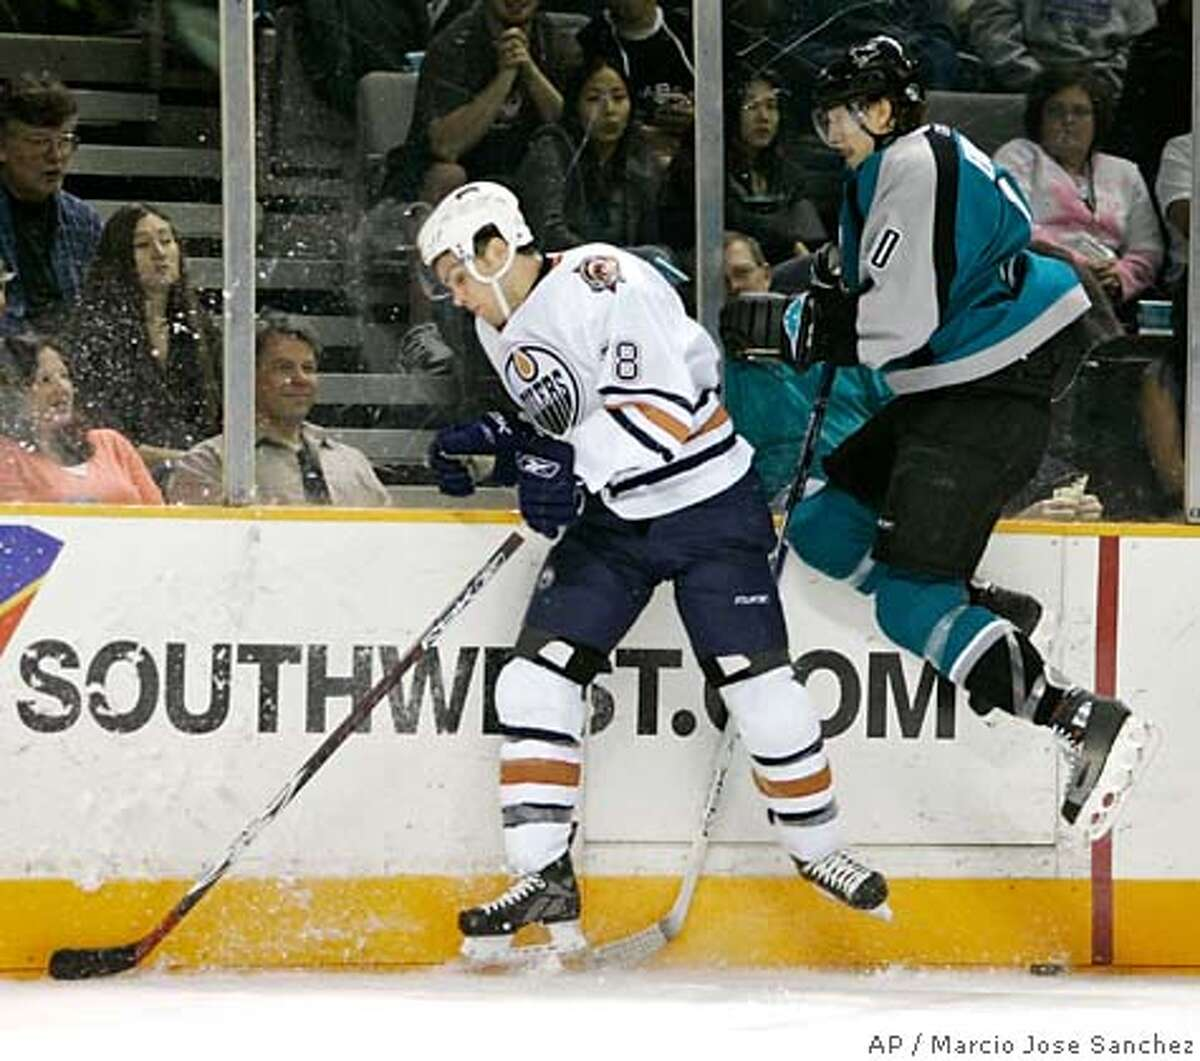 Edmonton Oilers center Marc-Antoine Pouliot, left, collides with San Jose Sharks defenseman Christian Ehrhoff, of Germany, in the first period of an NHL hockey game in San Jose, Calif., Sunday, March 11, 2007.(AP Photo/Marcio Jose Sanchez)